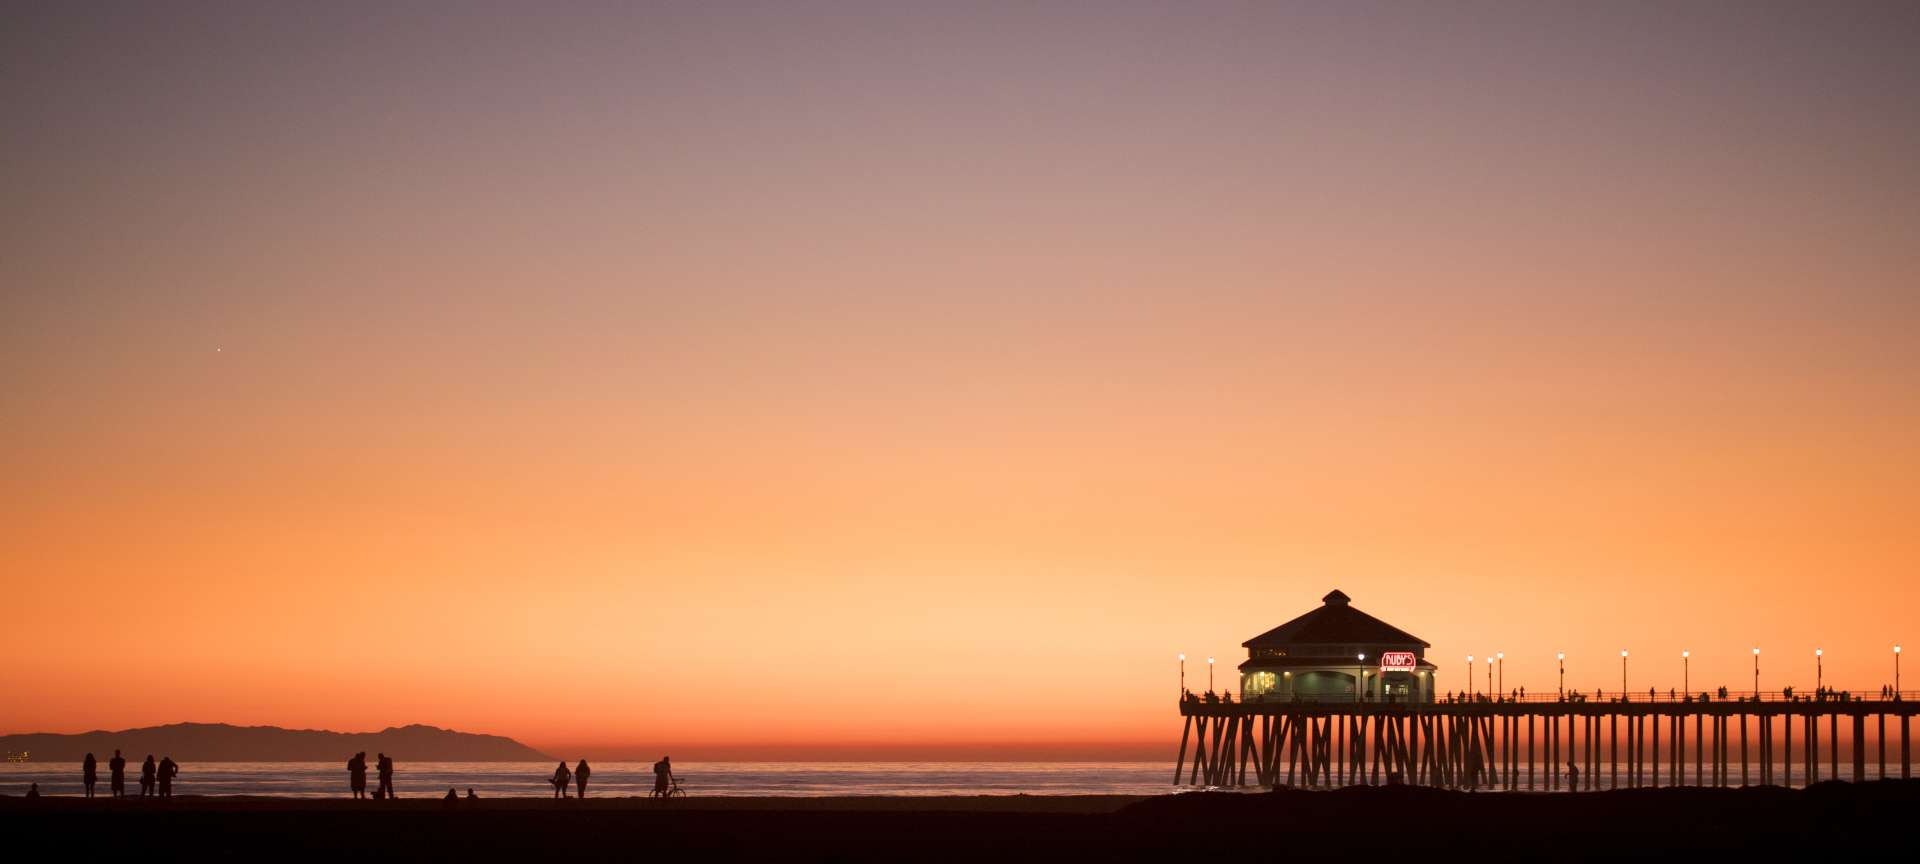 Huntington Beach Surf City Usa Things To Do Events Restaurants